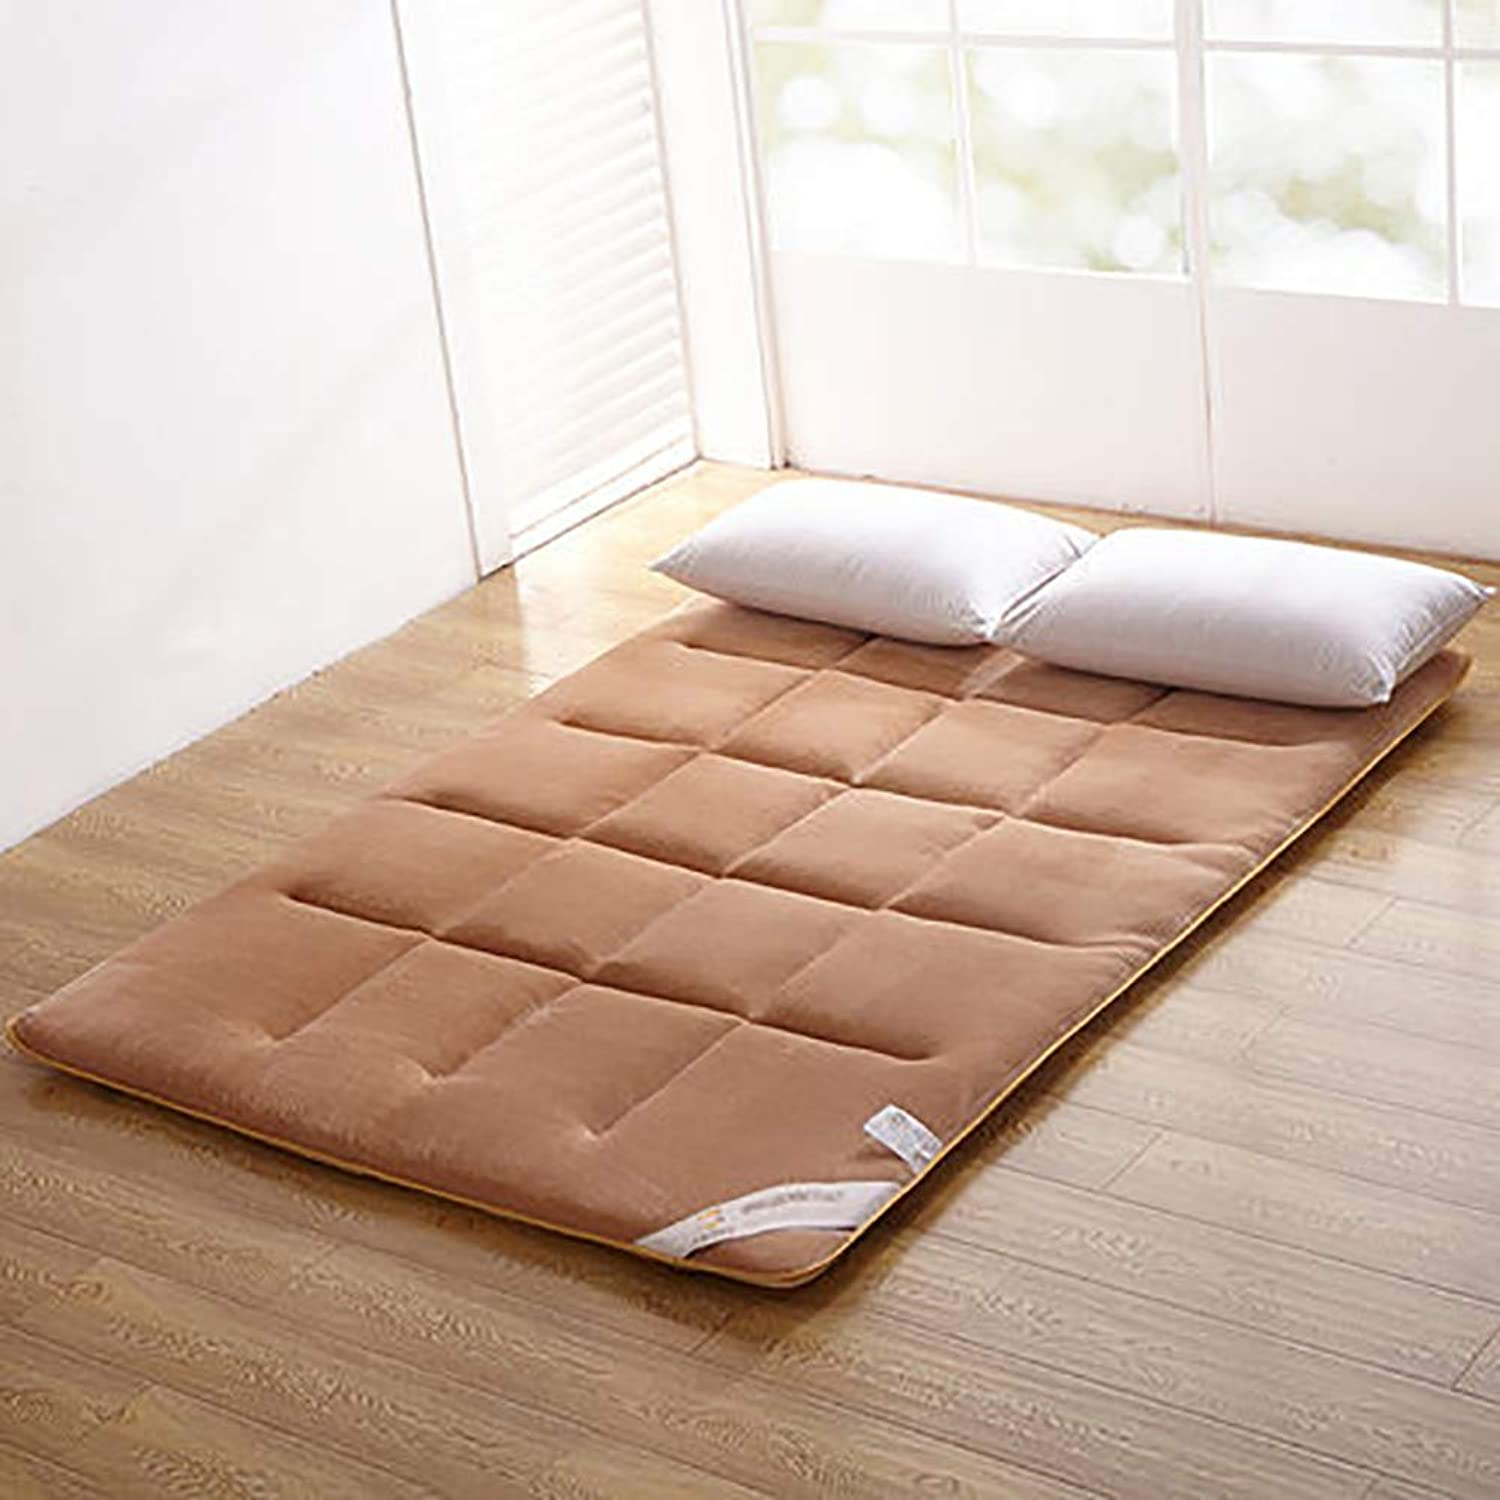 Non-Slip Mattress Pads,Tatami Mattress,Flannel Solid color Foldable Warm Winter Breathable Quilted Mattress-Light tan 150x200cm(59x79inch)